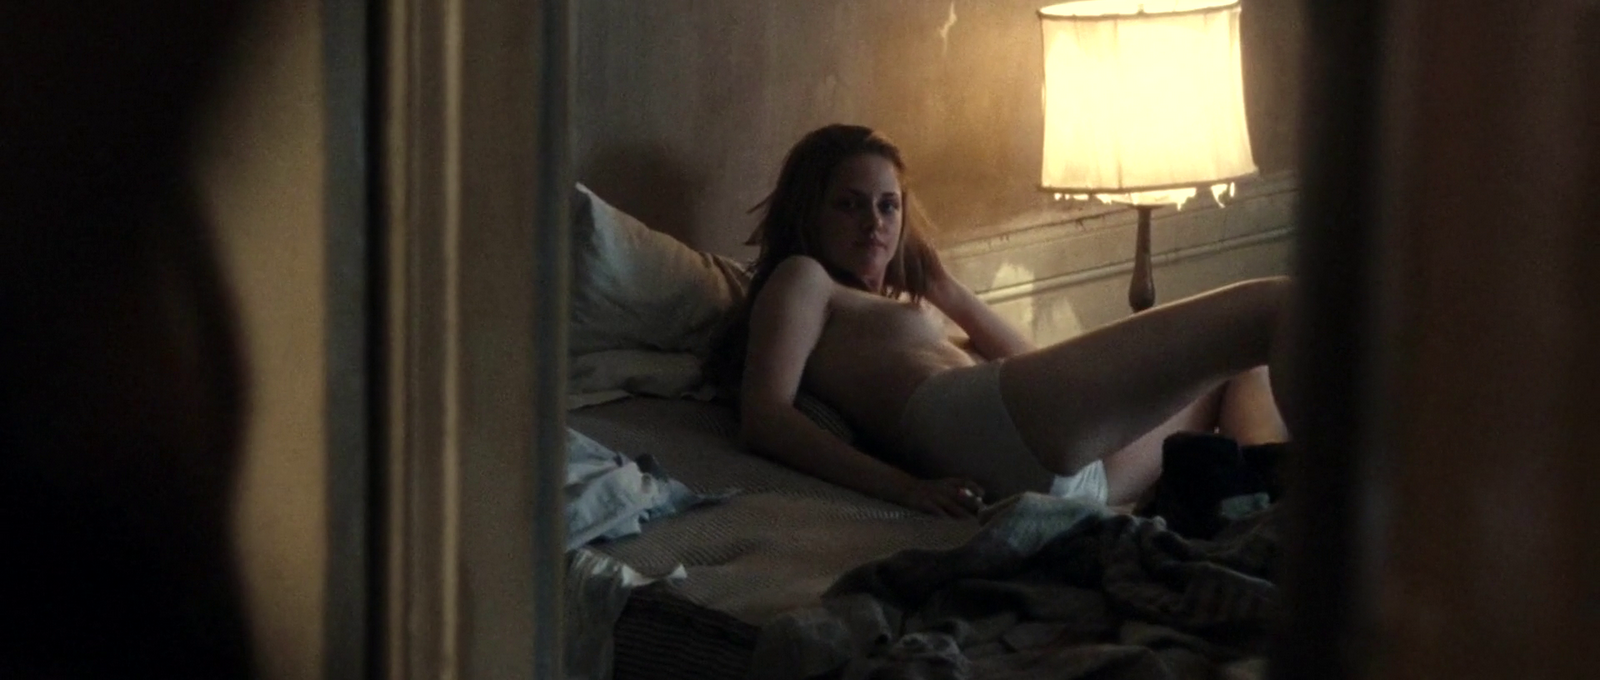 Nude Photos Of Kristen Stewart